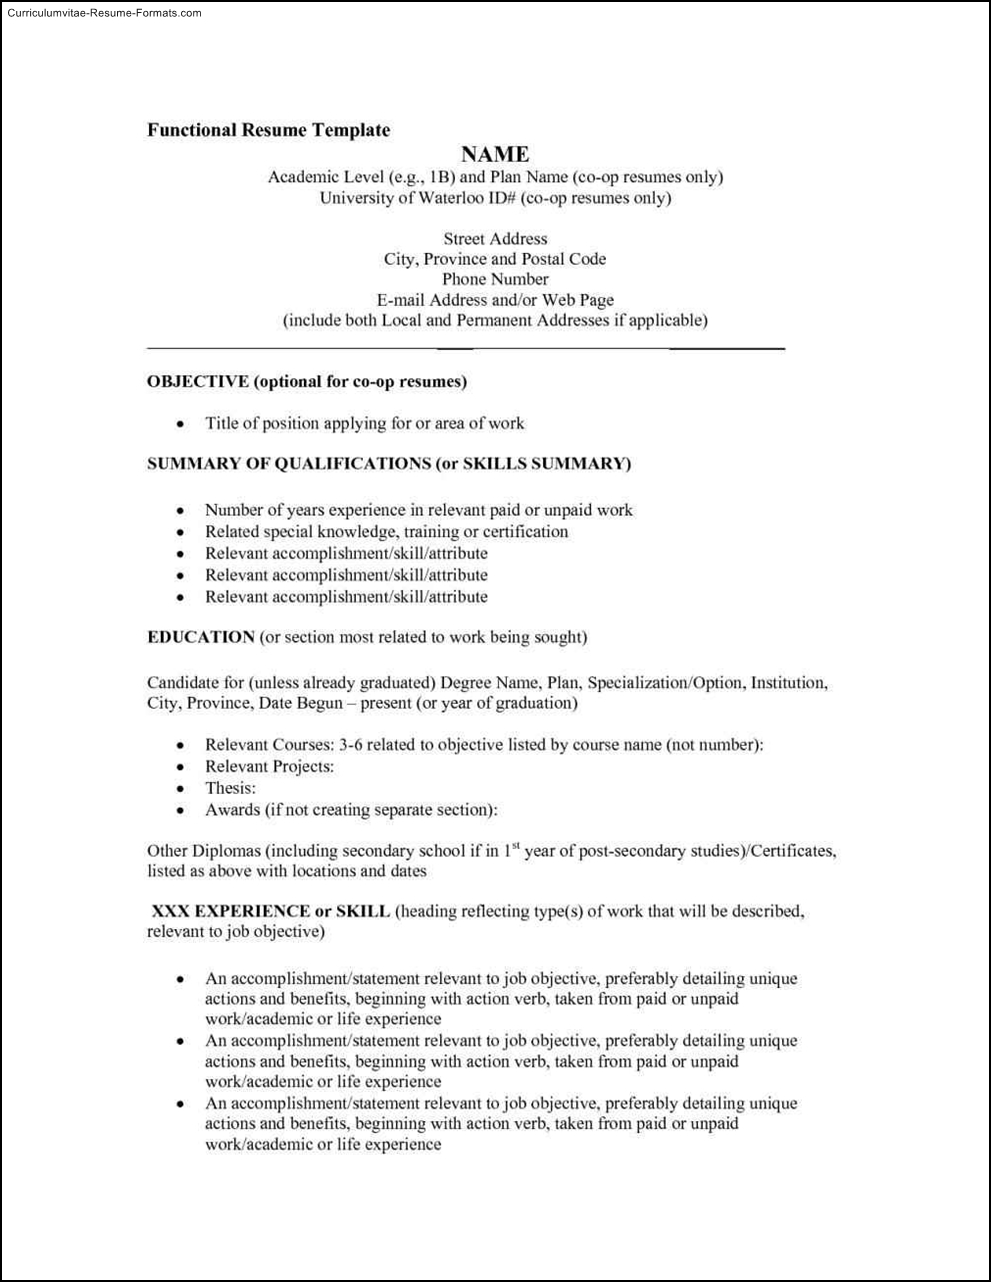 functional resumes templates